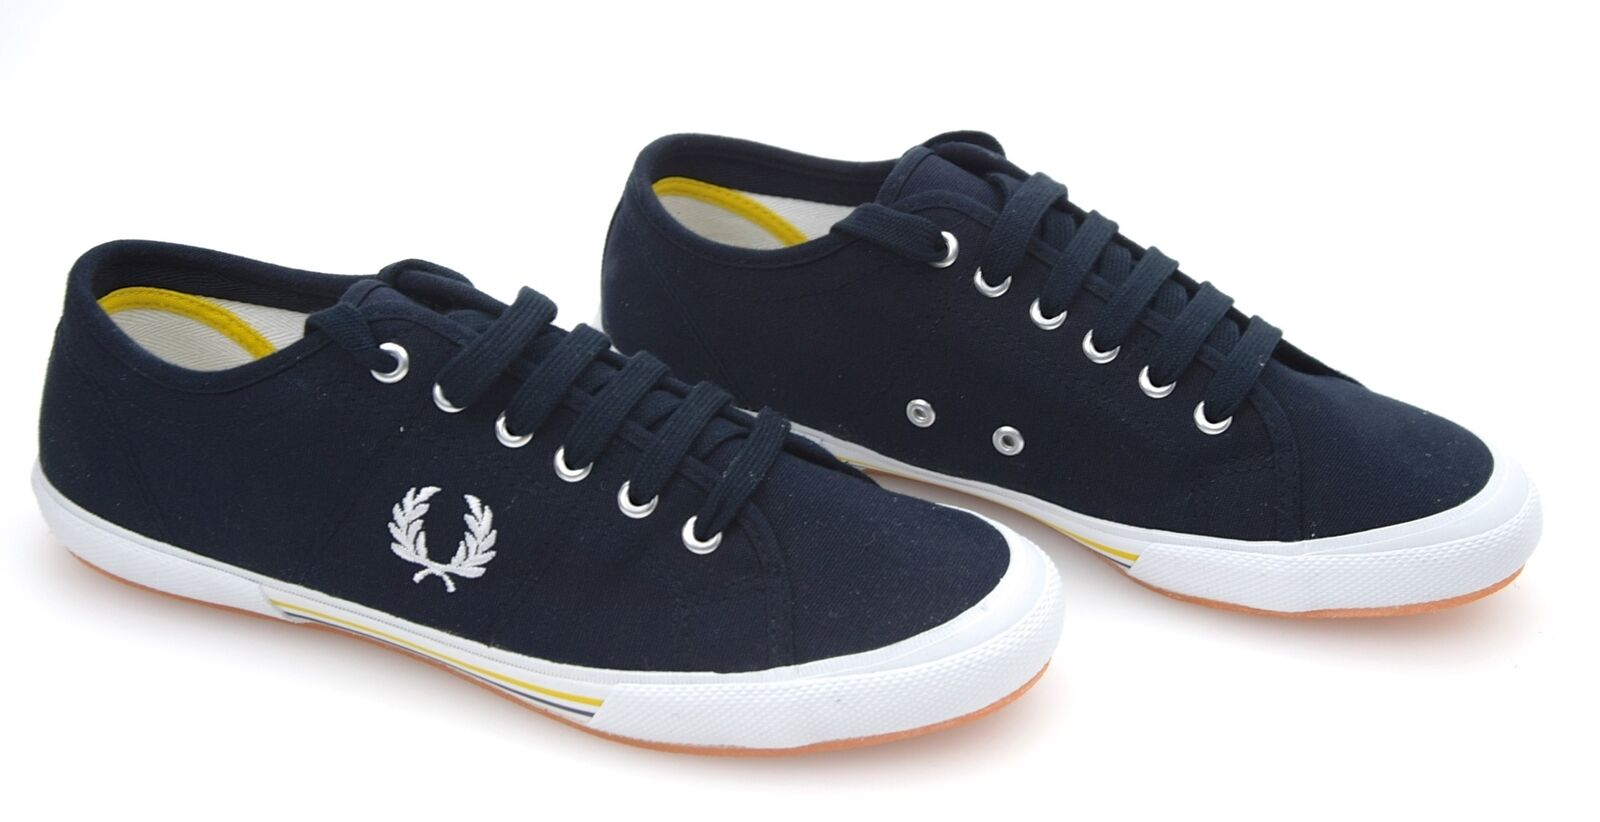 FRED PERRY MAN SNEAKER SHOES CASUAL FREE TIME CANVAS CODE B708